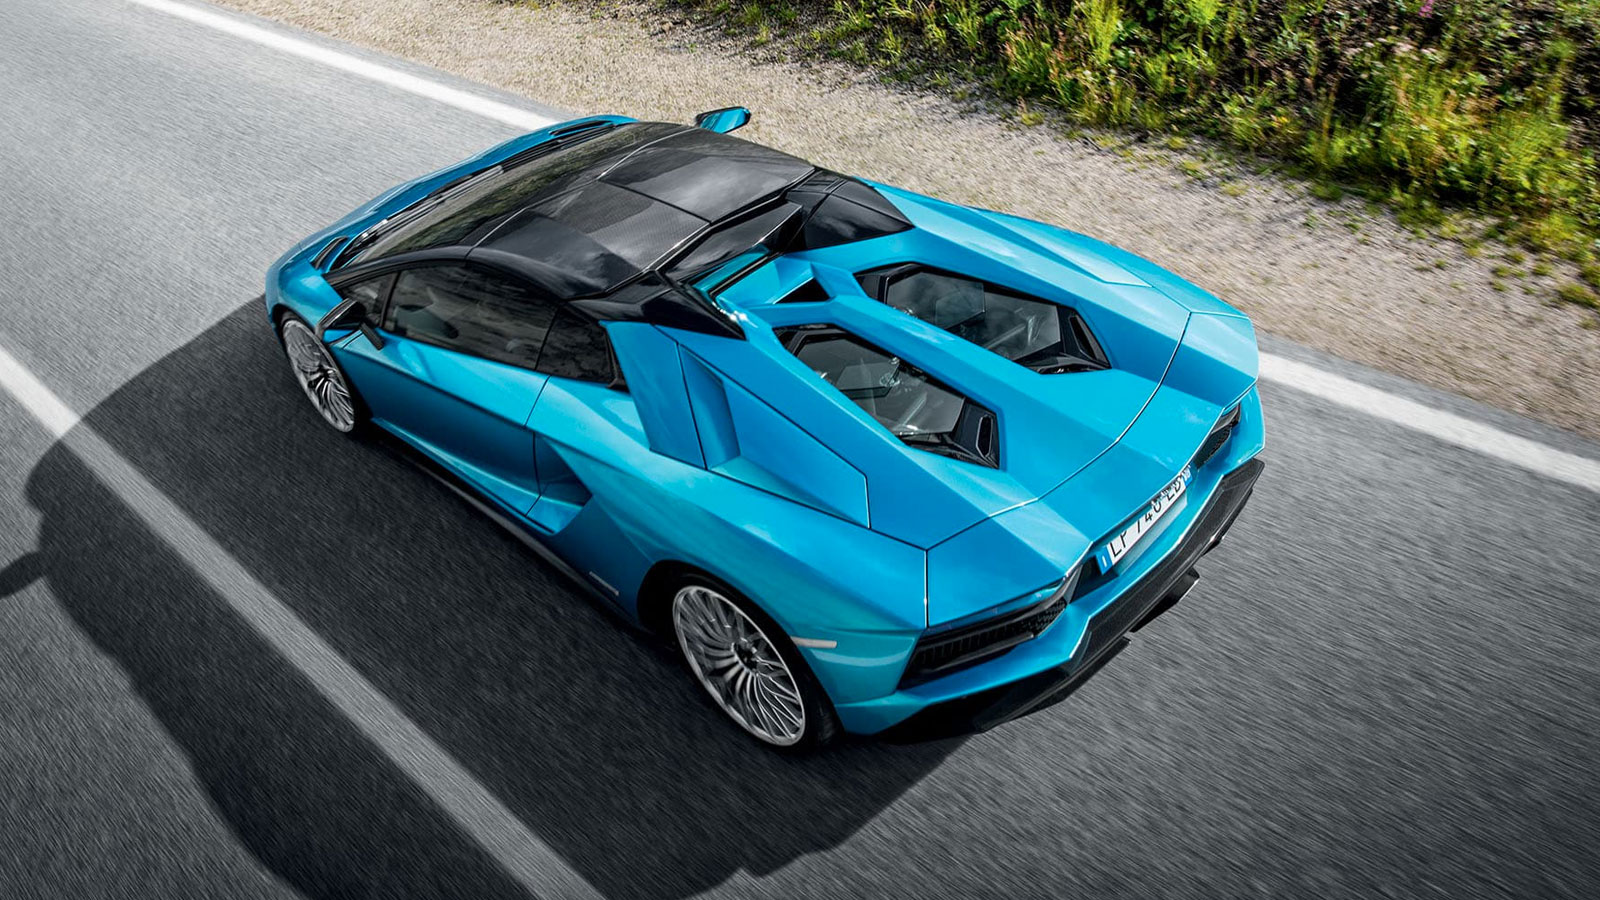 Lamborghini Aventador S Roadster - The Open Top Icon image 6